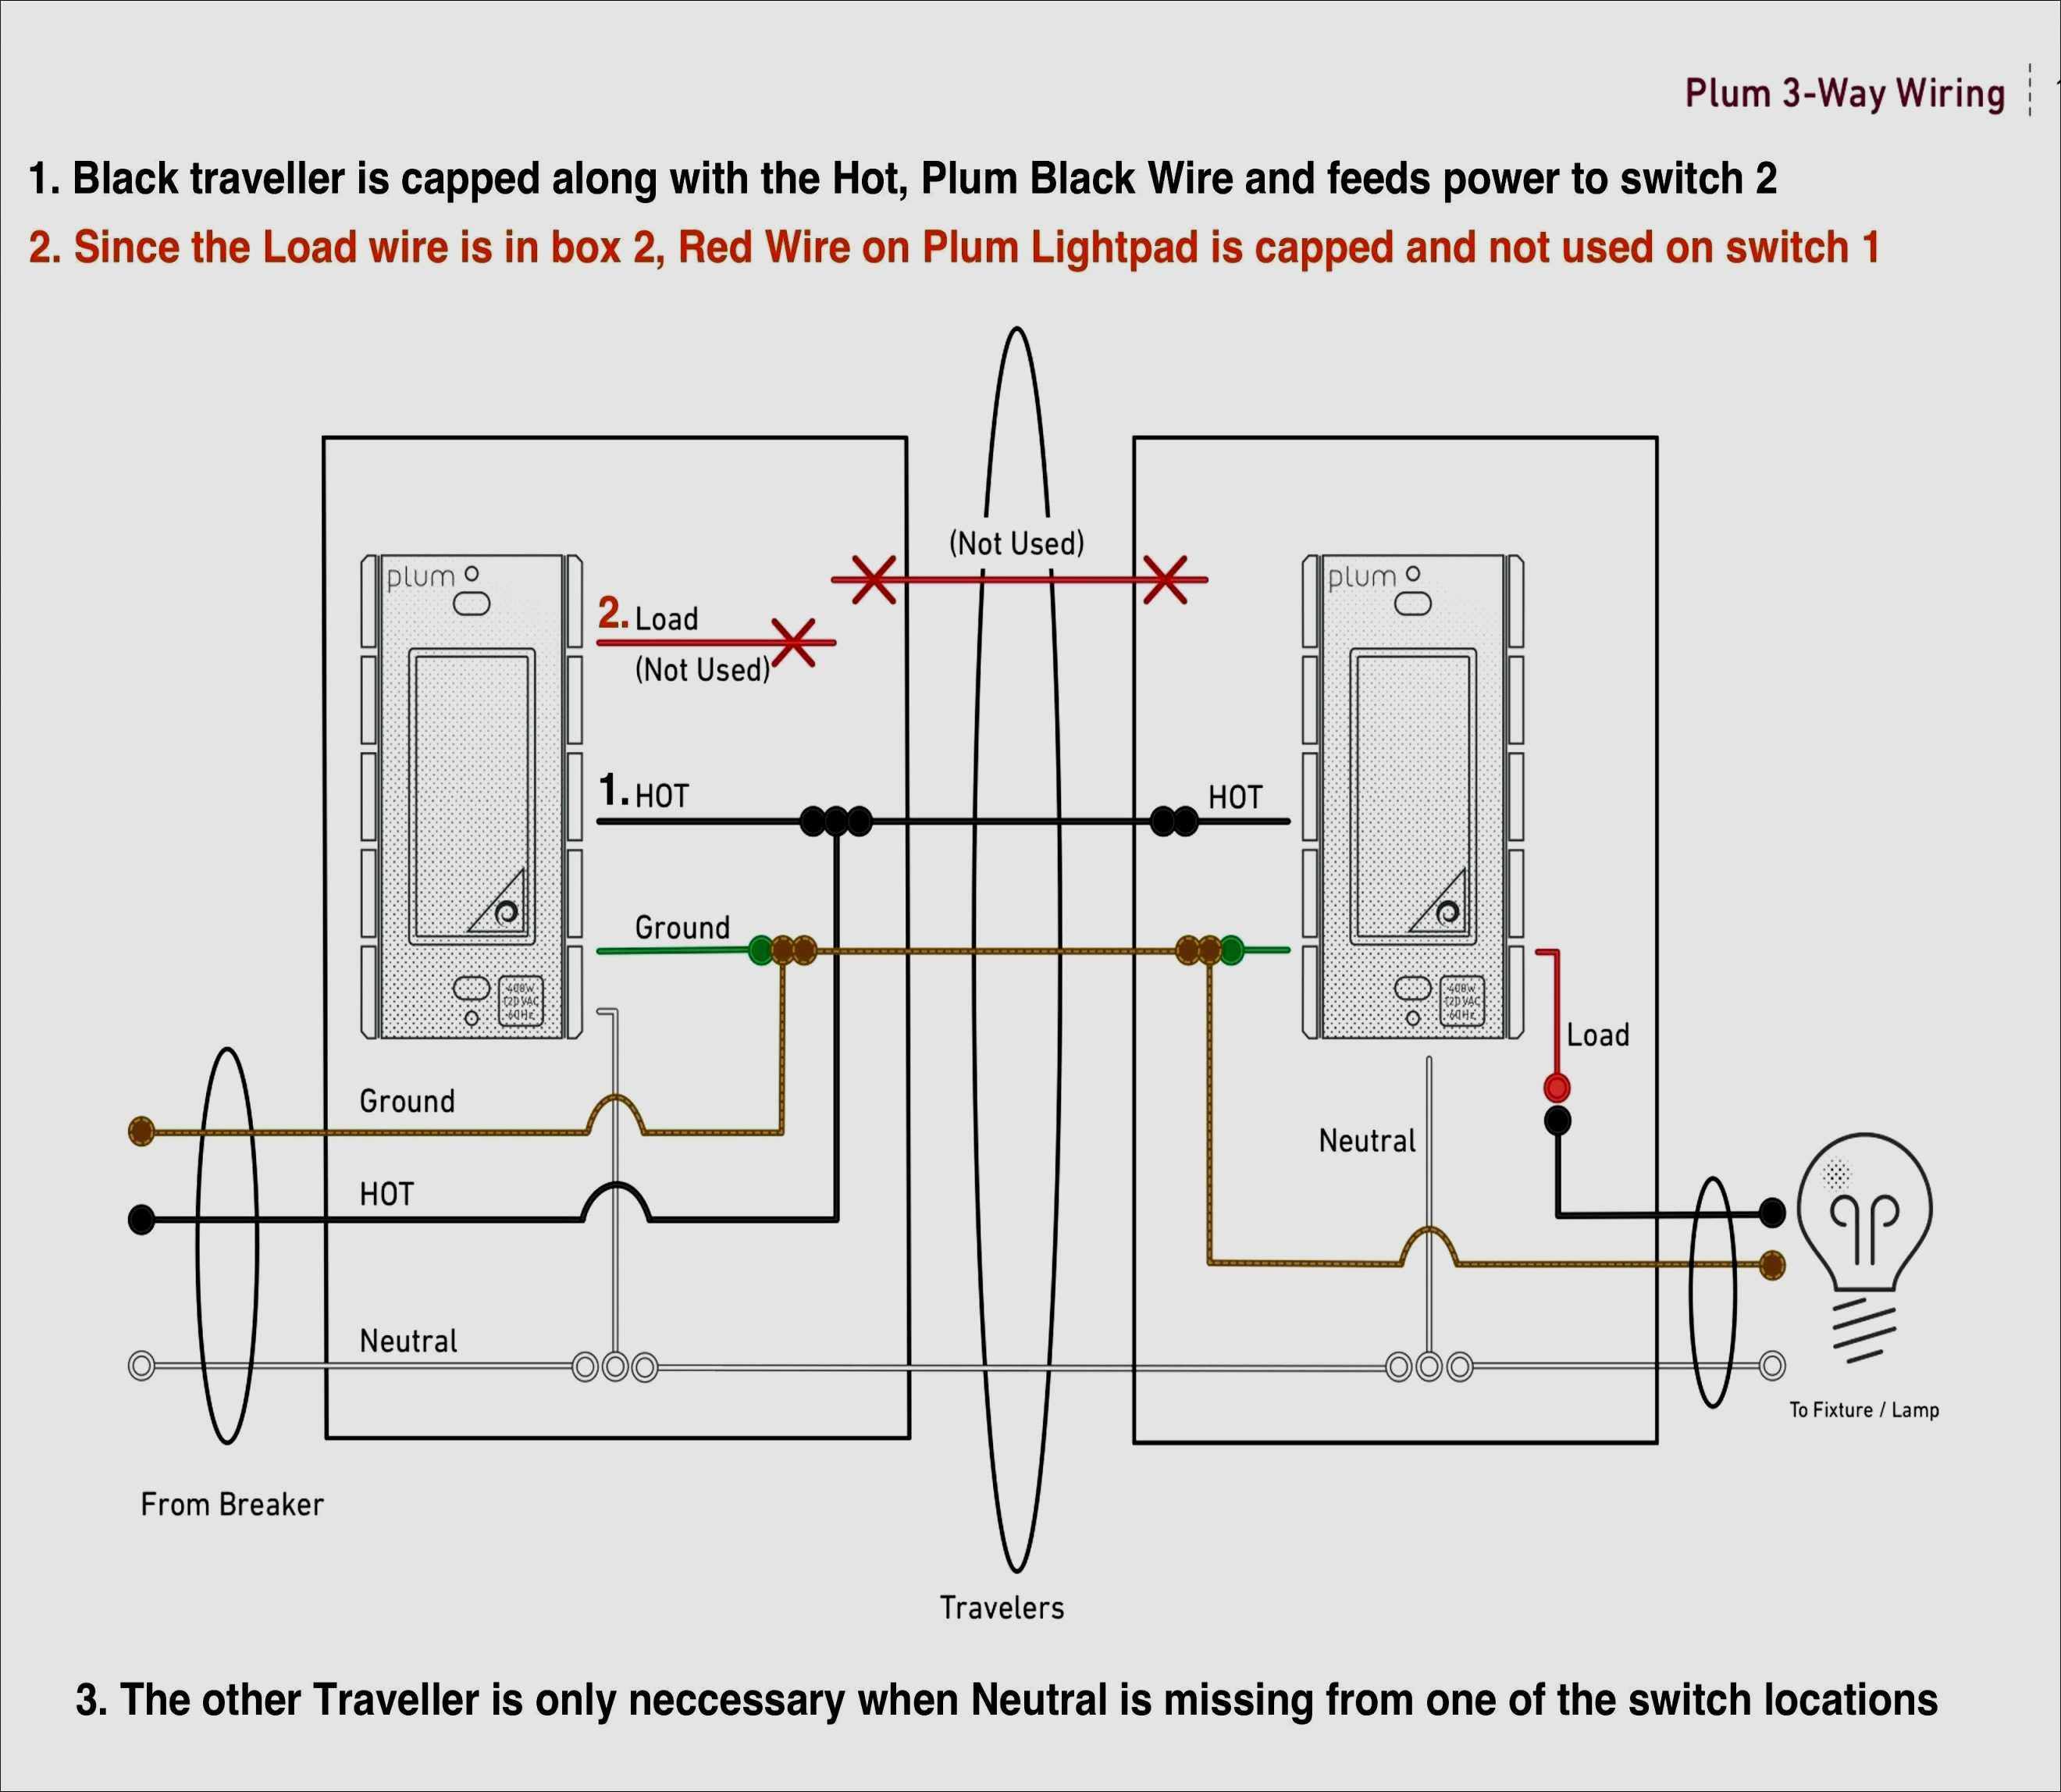 Lux Tx500E Thermostat Wiring Diagram | Manual E-Books - Lux Thermostat Wiring Diagram